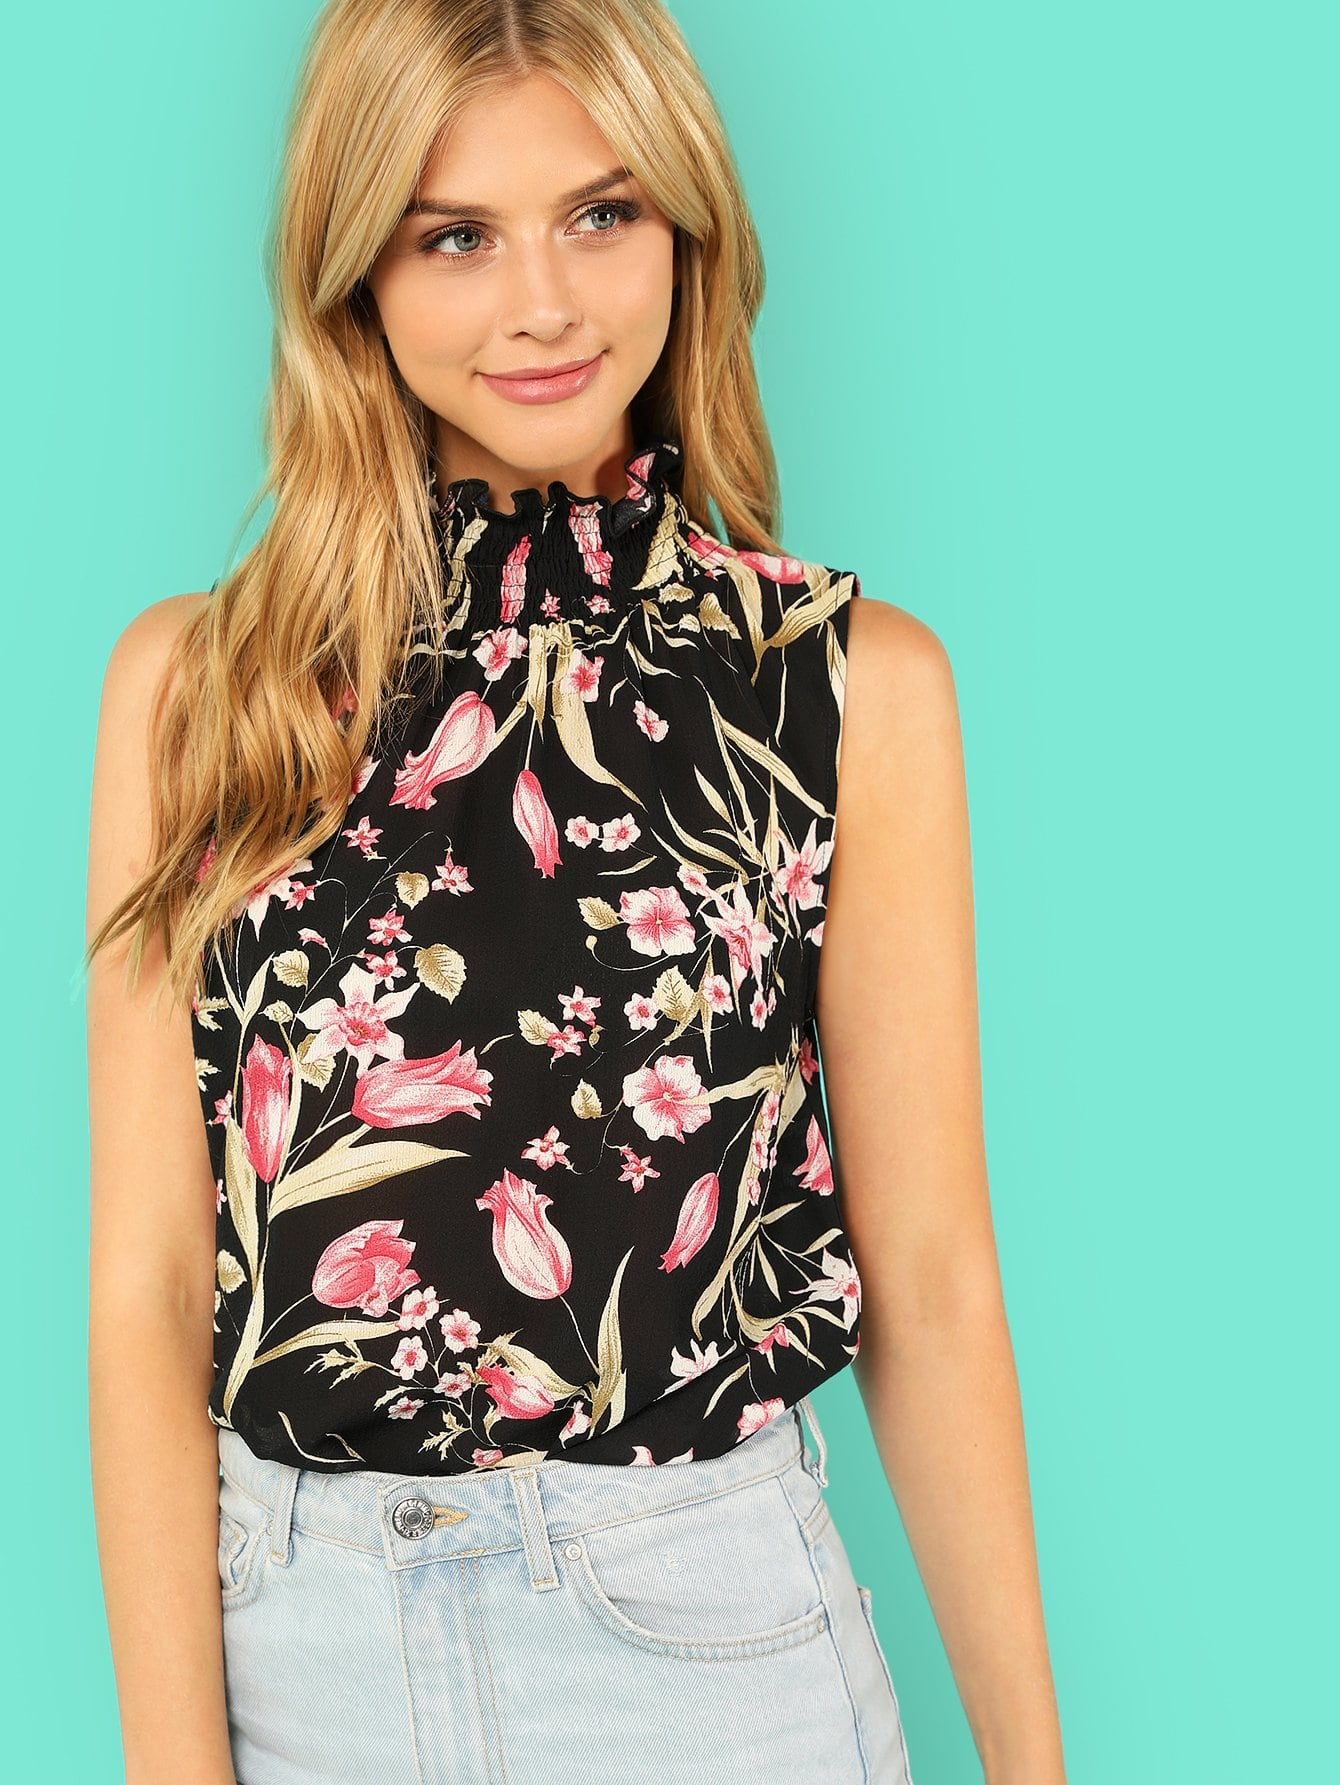 Neck Smocked Floral Sleeveless Top smocked floral cami top